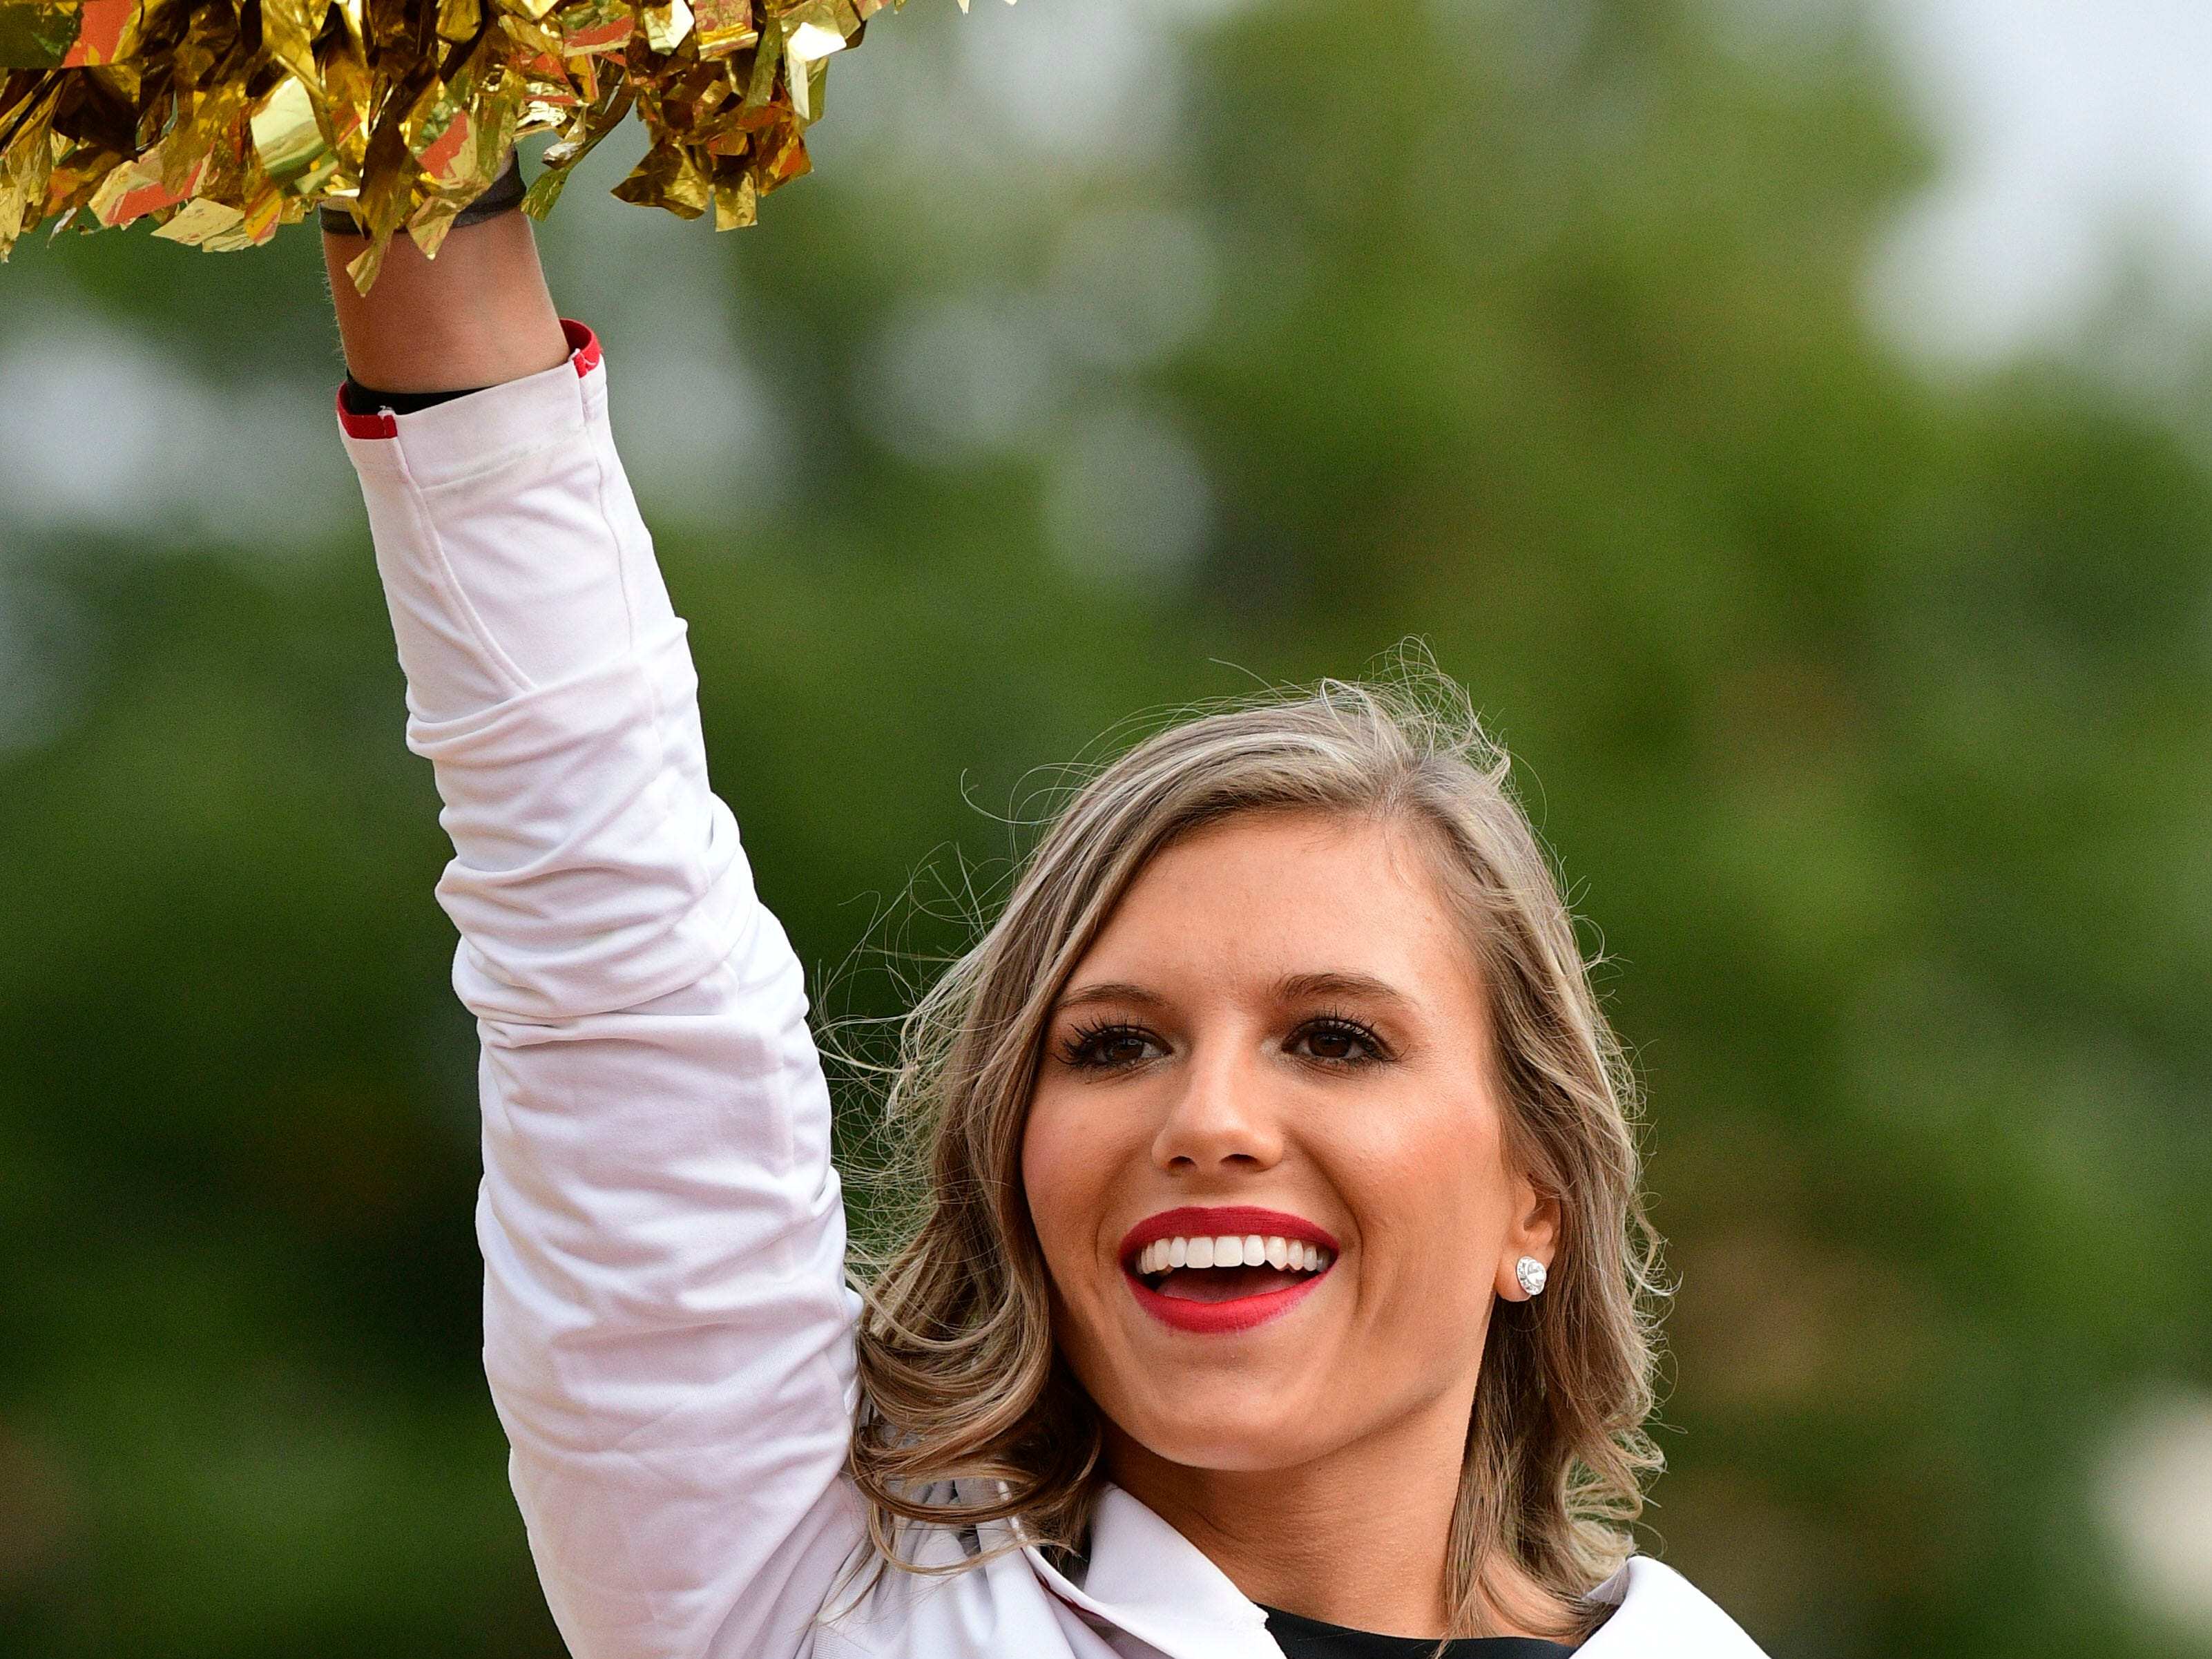 Week 9: A Maryland Terrapins cheerleader preforms before the game against the Illinois Fighting Illini at Capital One Field at Maryland Stadium.